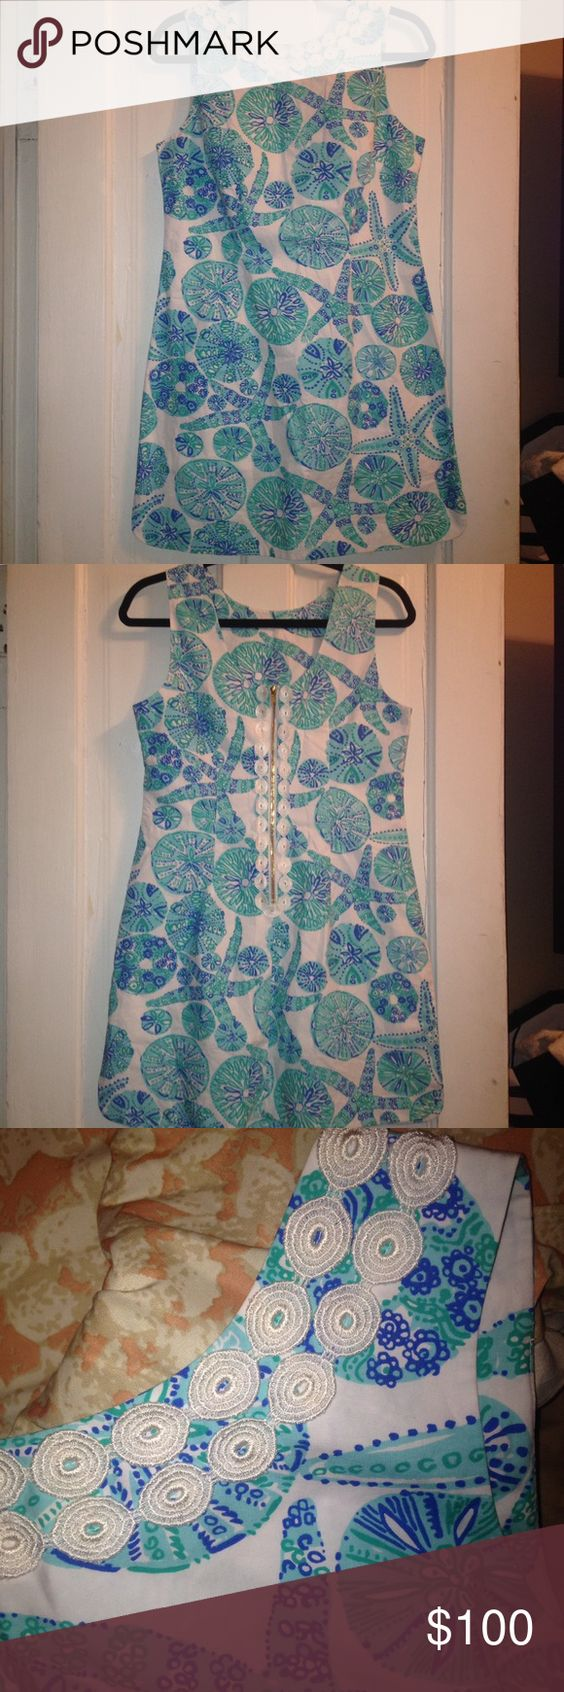 1OAK Lilly Pulitzer Sea Urchin Dress Beautiful one of a kind dress from Lilly Pulitzer for target, you won't find this dress anywhere else, if so...show me and price will drop...this one has white trimming around the neck line and a U shape cut at the bottom with a half a inch slit on each side of the dress. It also have a sheer ivory lining on the inside, ask any questing before purchasing, price reflect condition, in this case it's NWOT. Lilly Pulitzer for Target Dresses